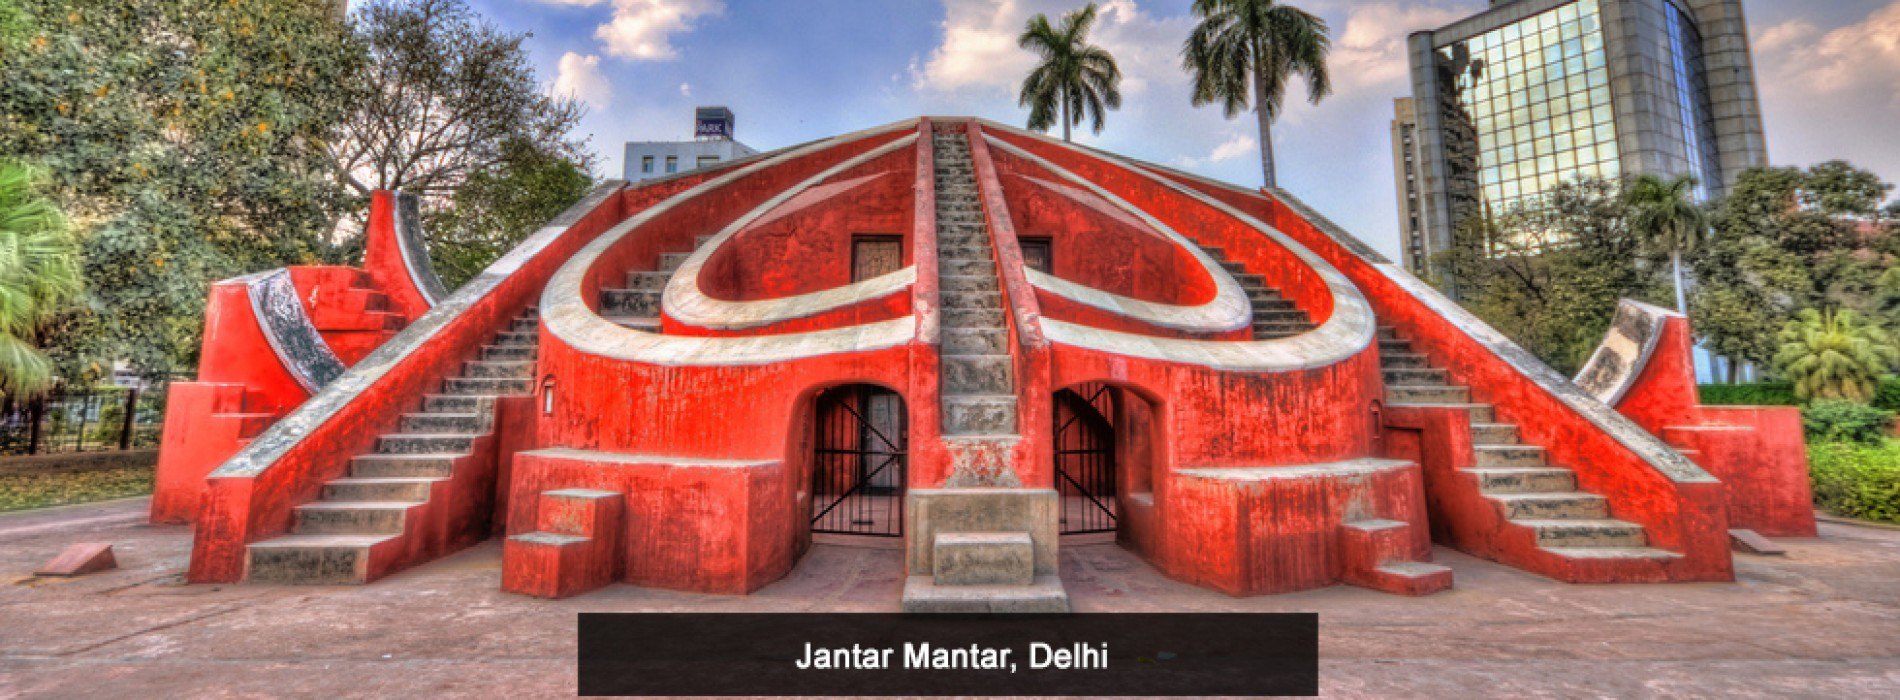 Seven shortlisted companies given 'Letters of Intent' for 14 monuments under 'Adopt a Heritage Scheme' of M/O Tourism